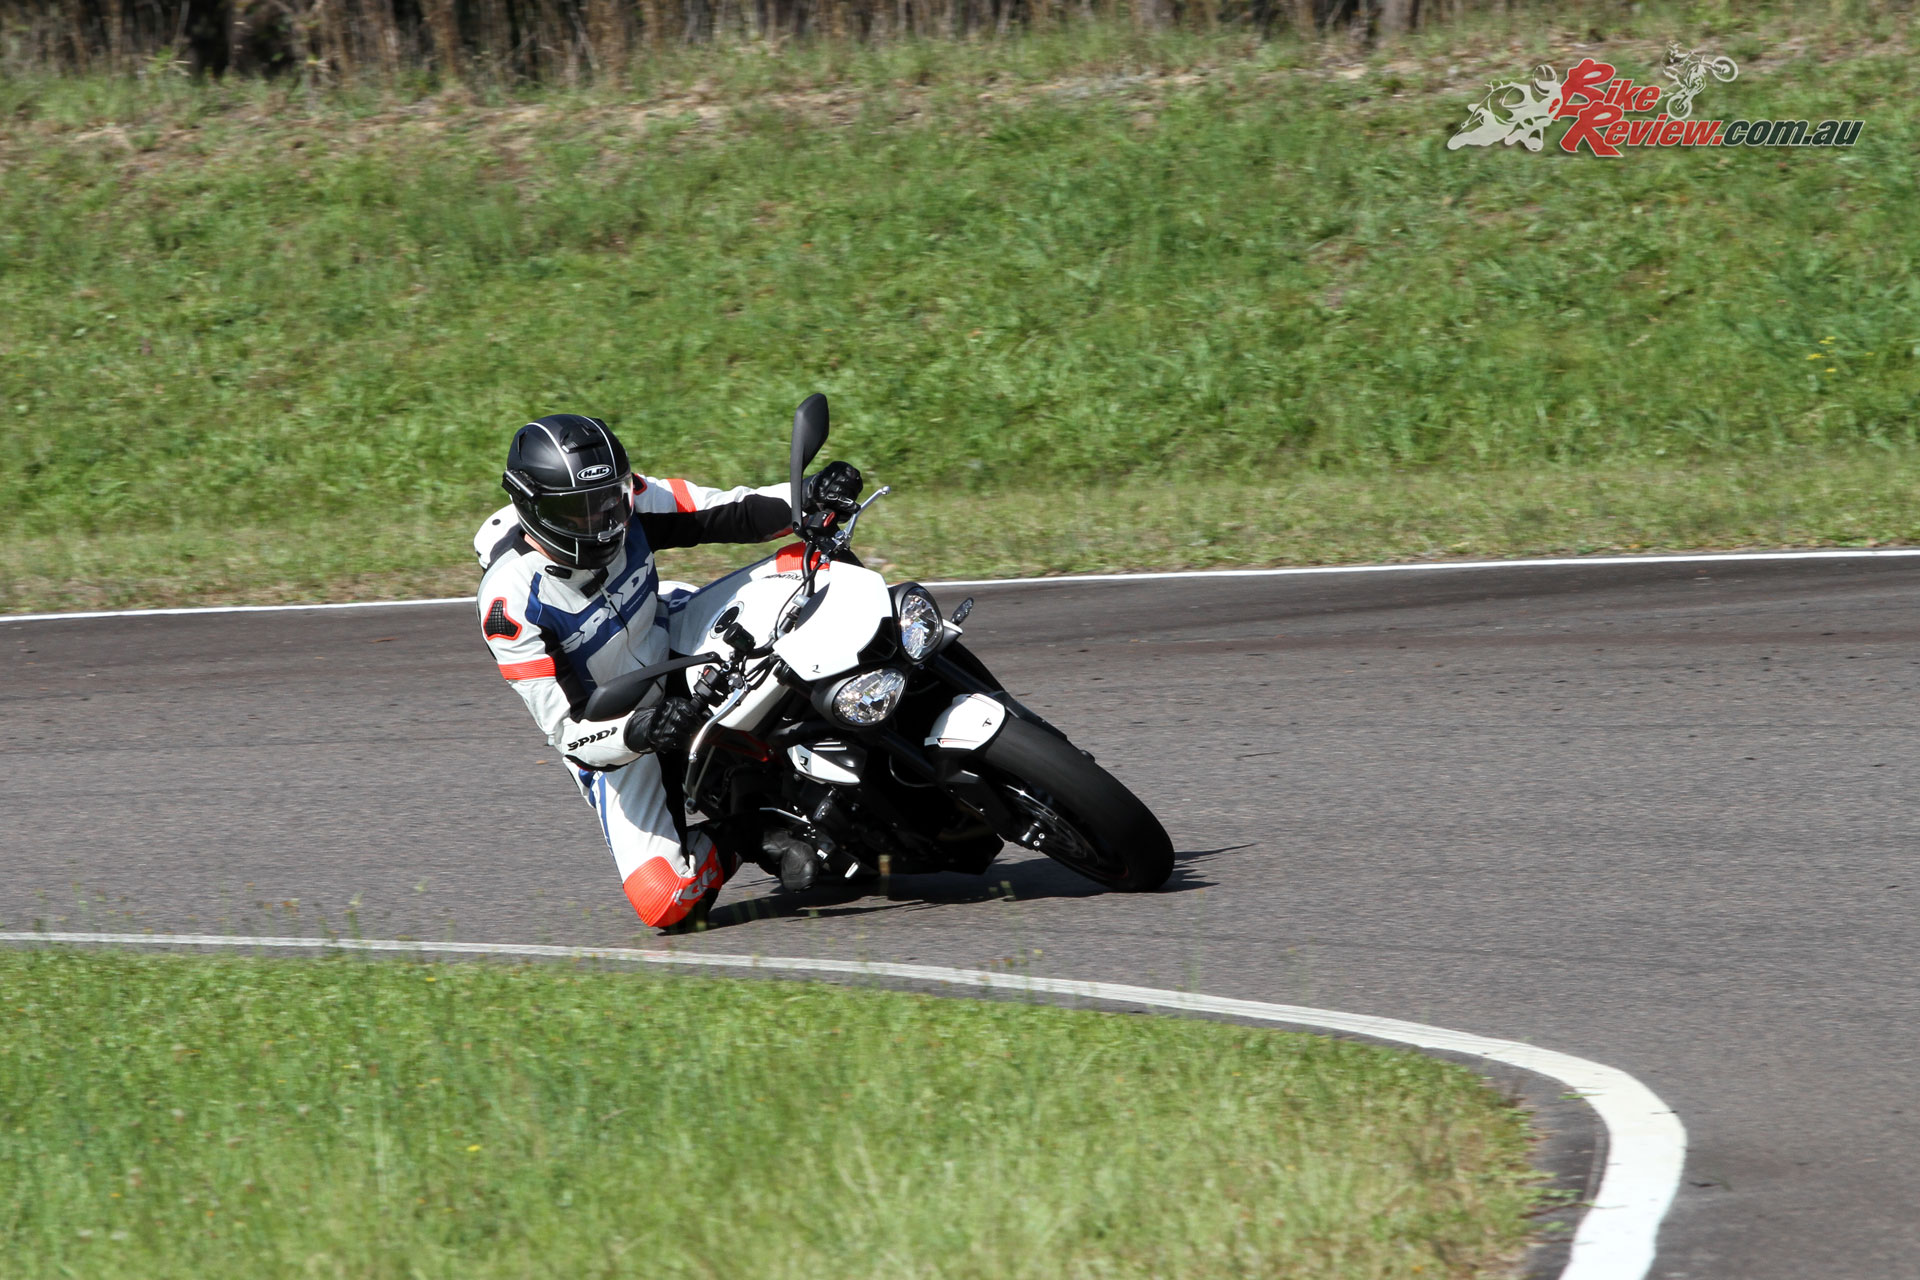 The Street Triple further proved its geometry and chassis in the latest iteration